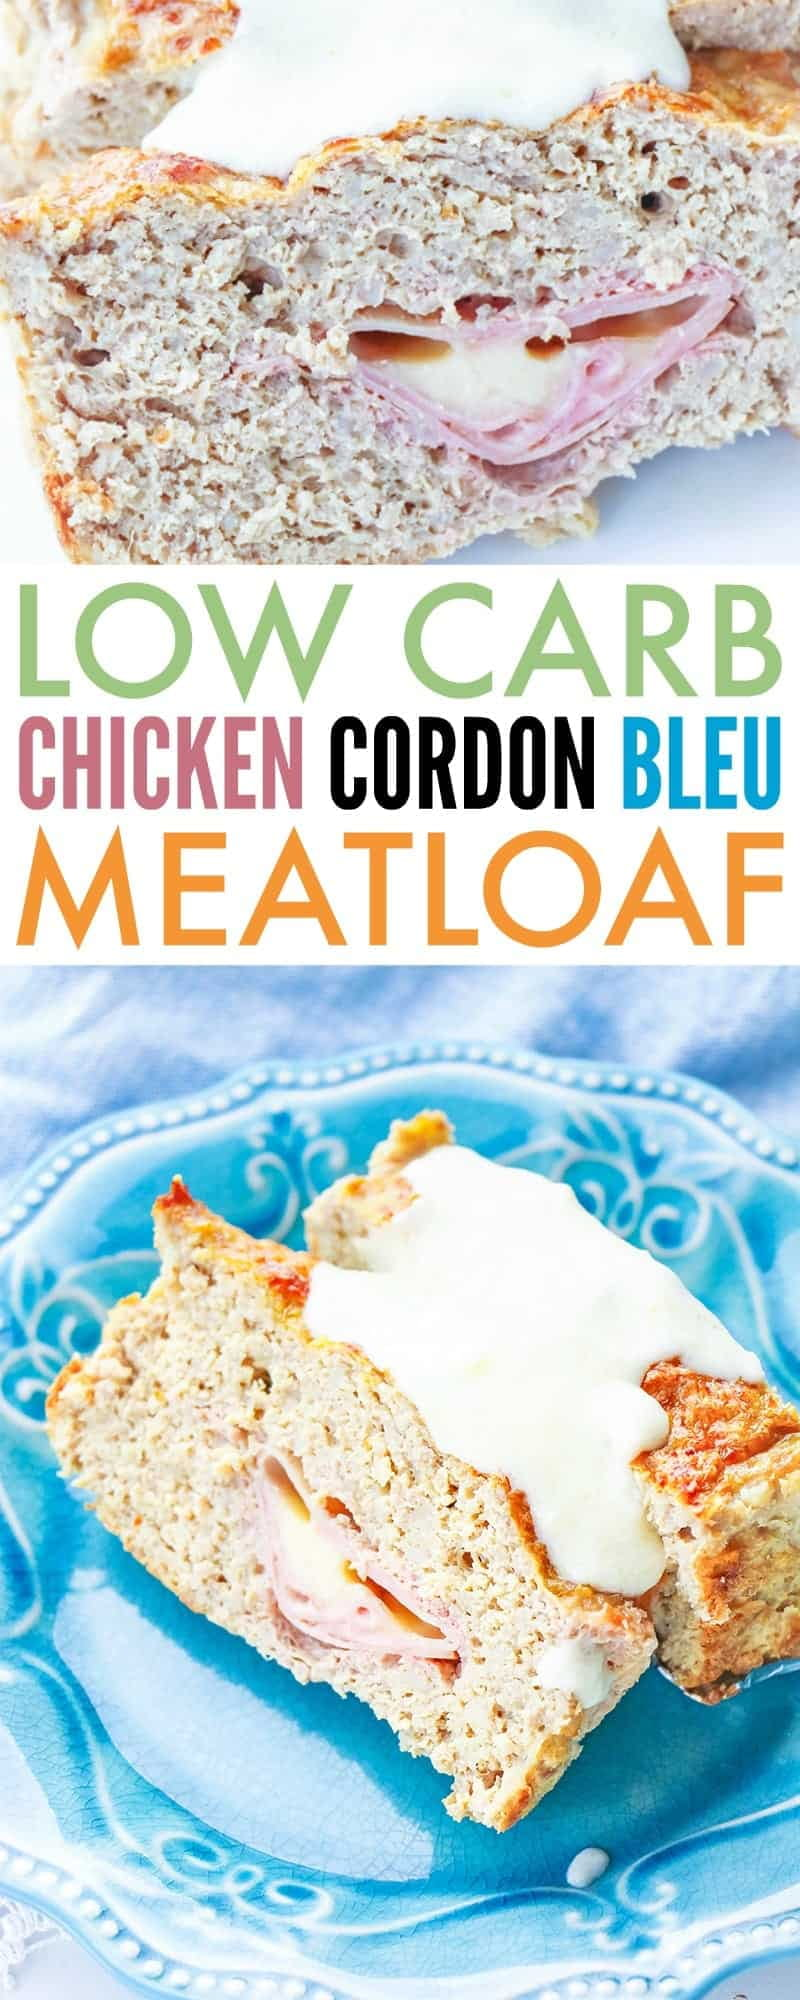 This low carb chicken cordon bleu meatloaf takes meatloaf to the next level by using ground chicken and stuffing it with ham and cheese and slathering it in a creamy sauce. Perfect keto dinner for the whole family!